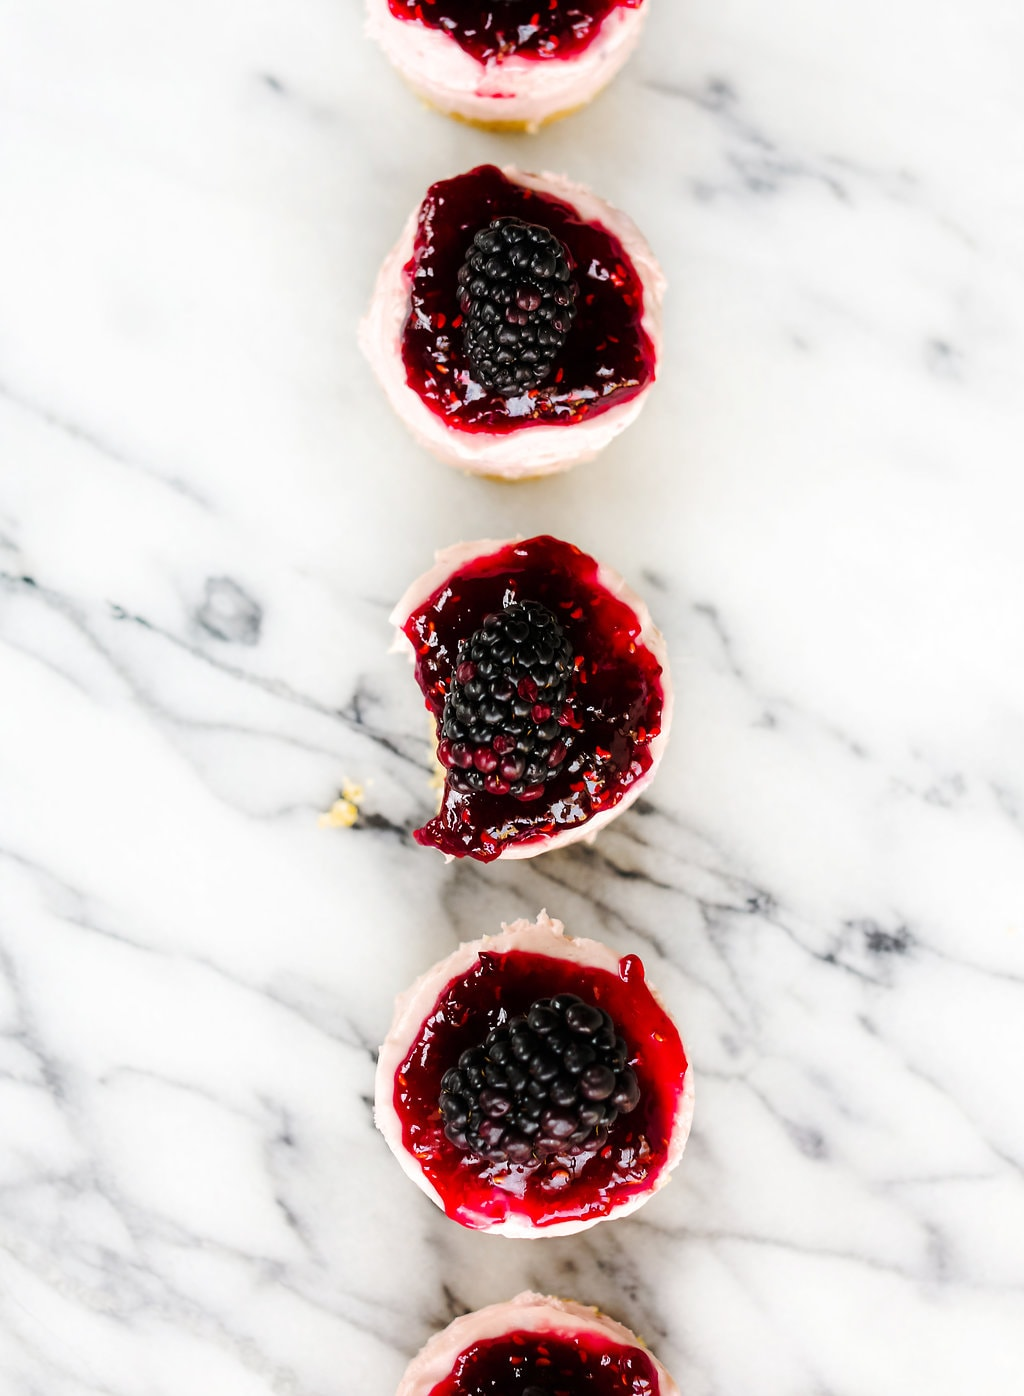 These NO BAKE mini blackberry cheesecakes are so cute and easy to transport! Perfect for a summer get together.